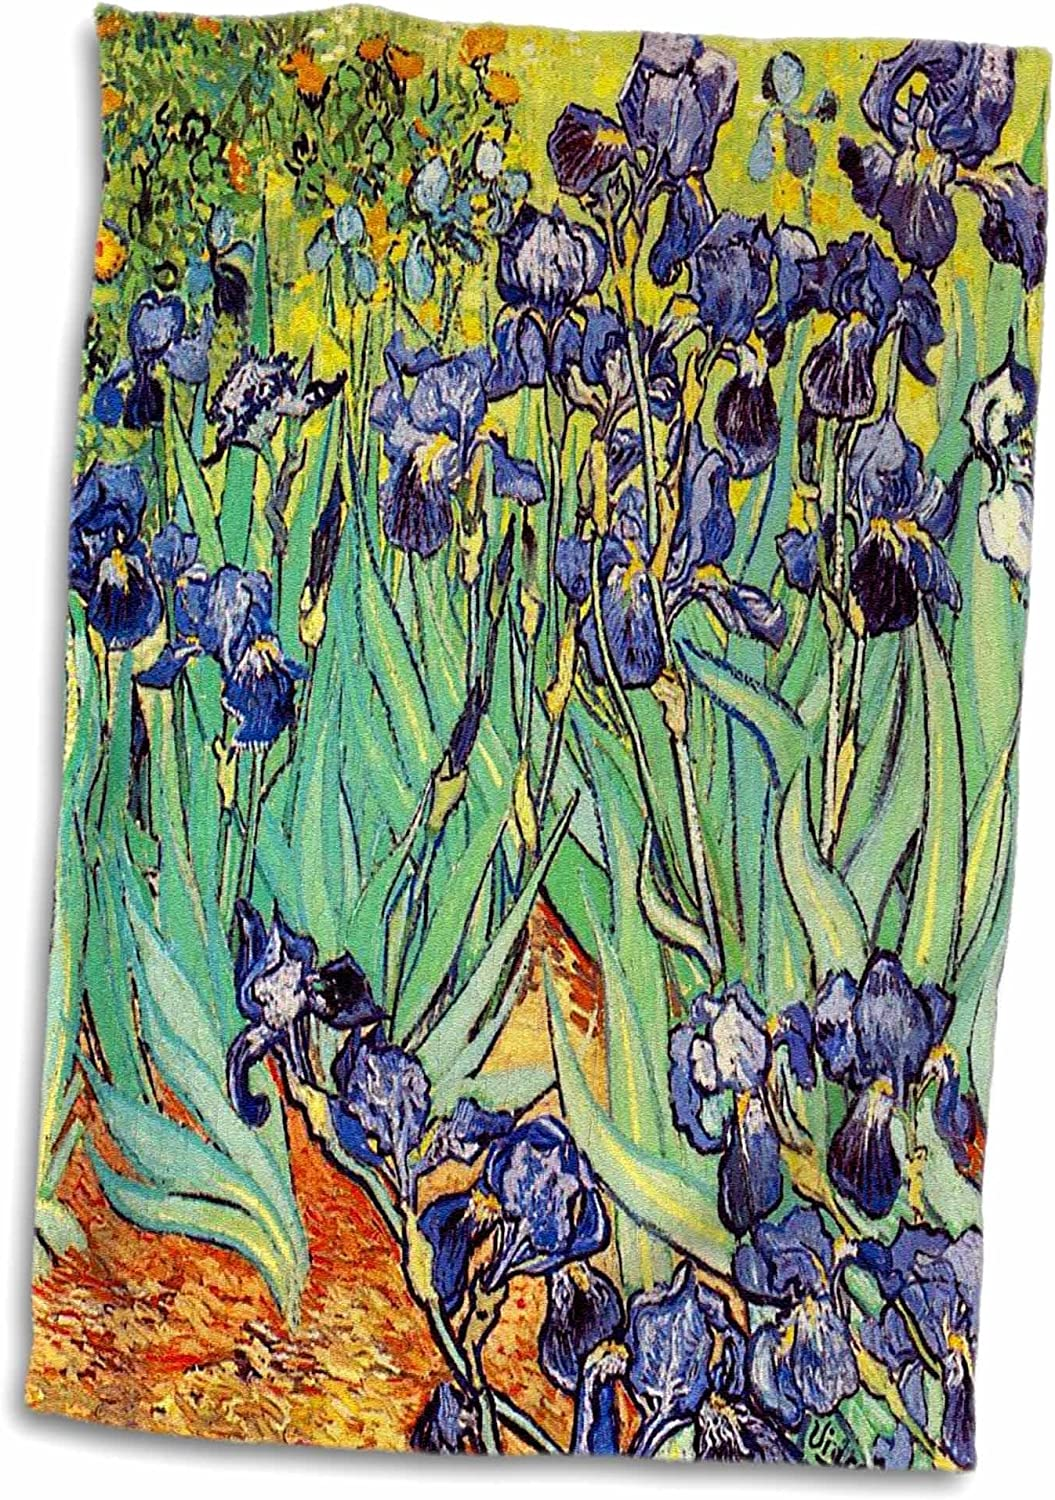 "3D Rose Irises by Vincent Van Gogh 1889-Purple Flowers Iris Garden-Copy of Famous Painting by The Master Towel, 15"" x 22"", Multicolor"